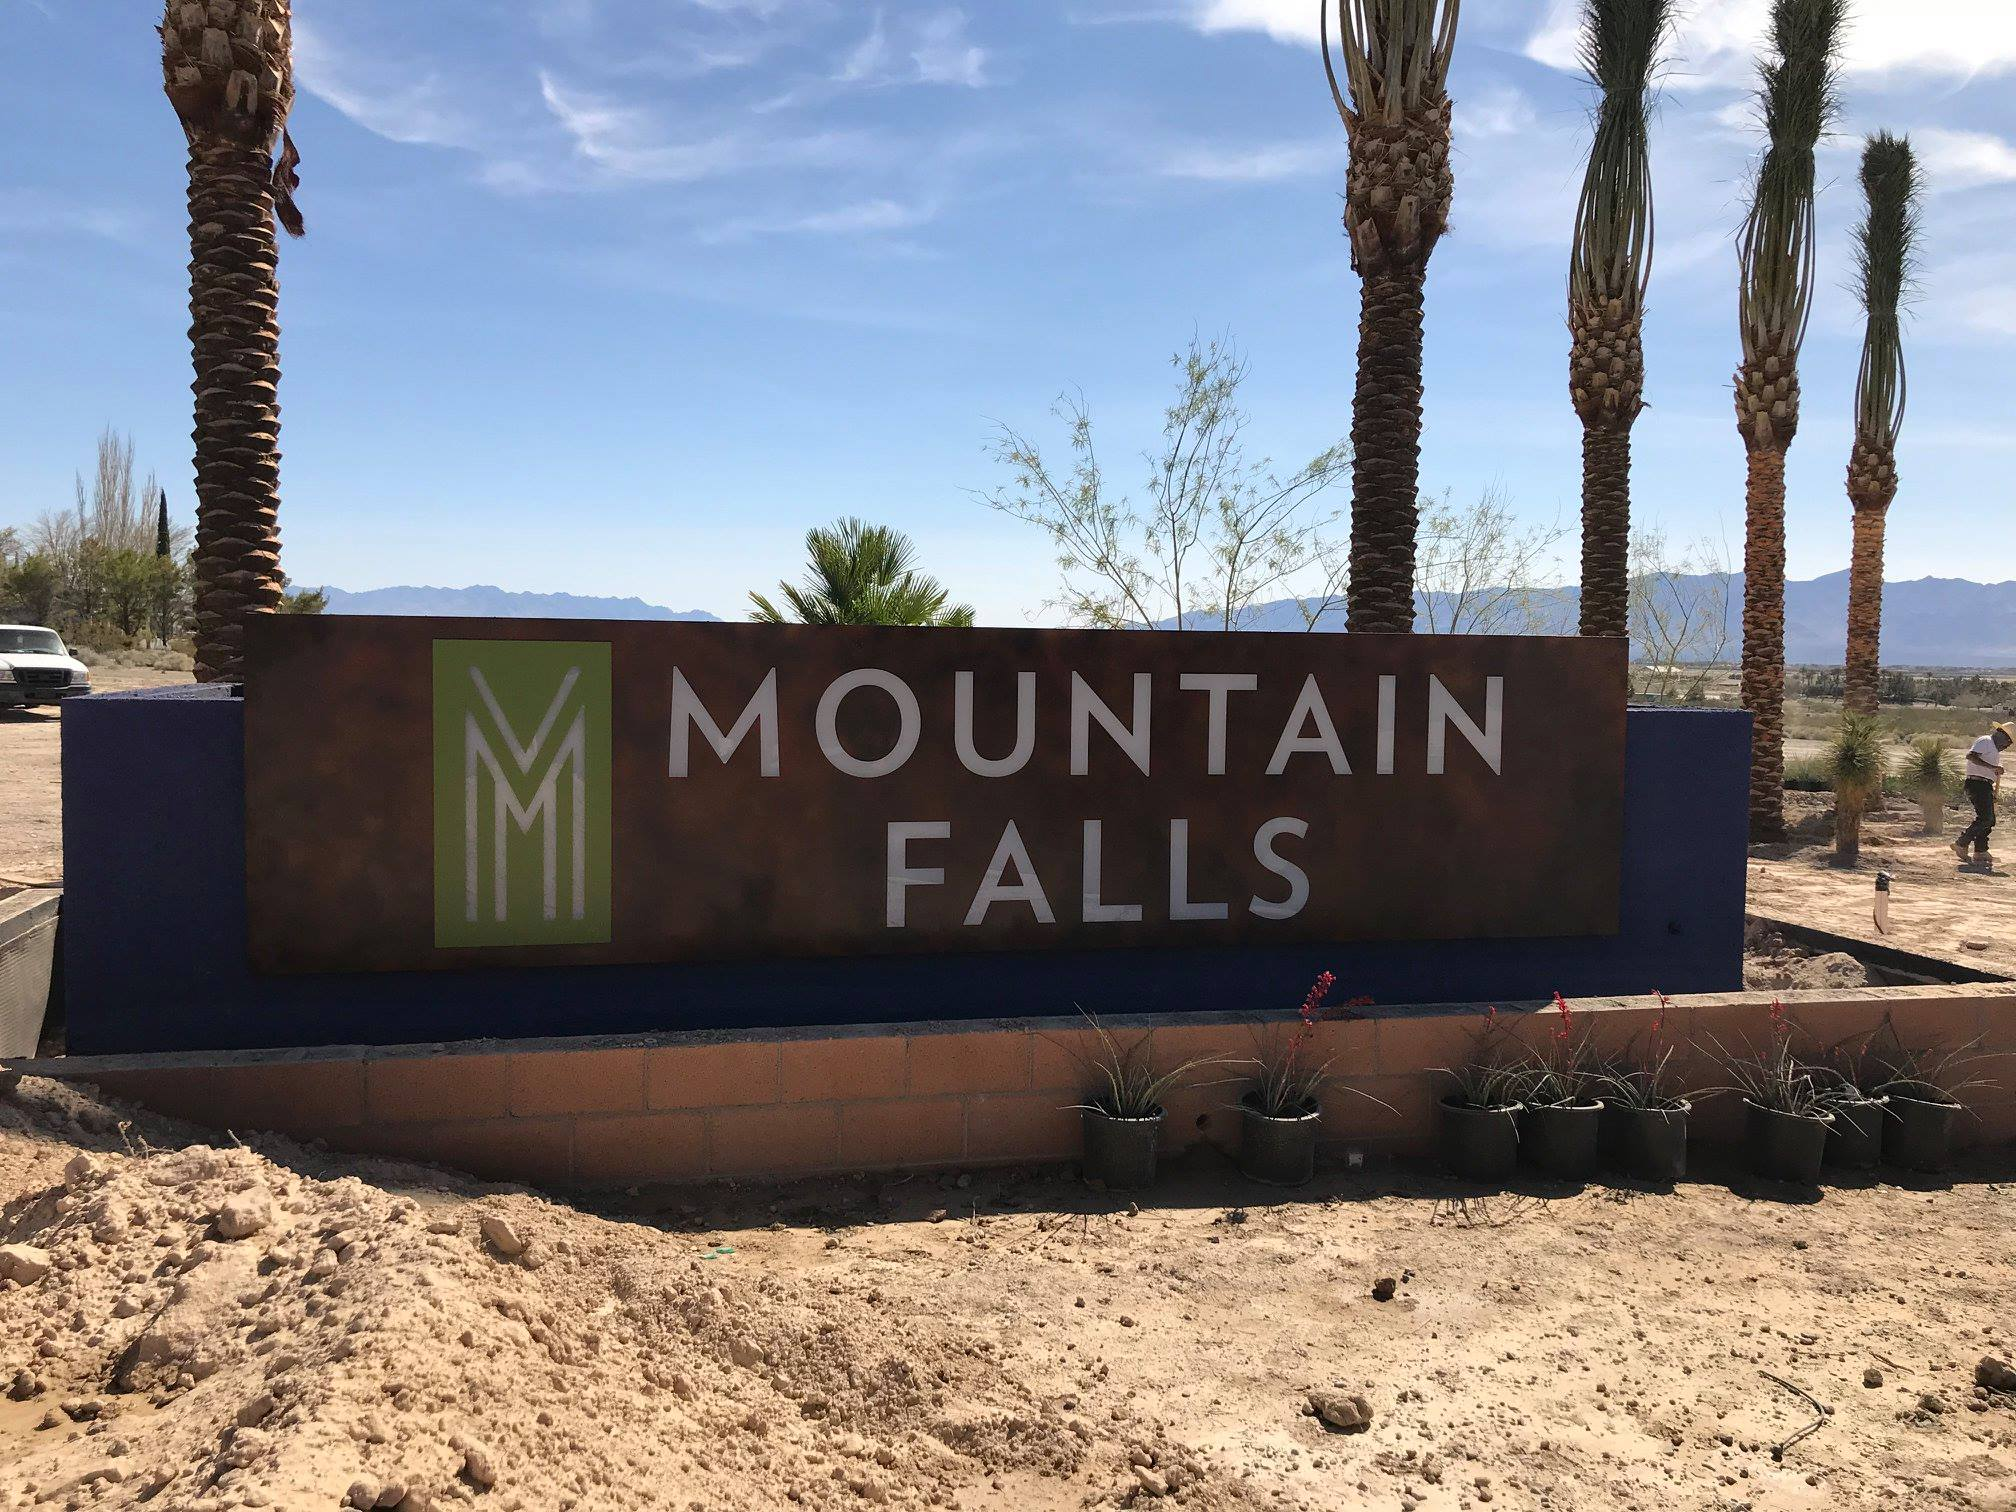 475 - Mountain Falls - Monument Sign